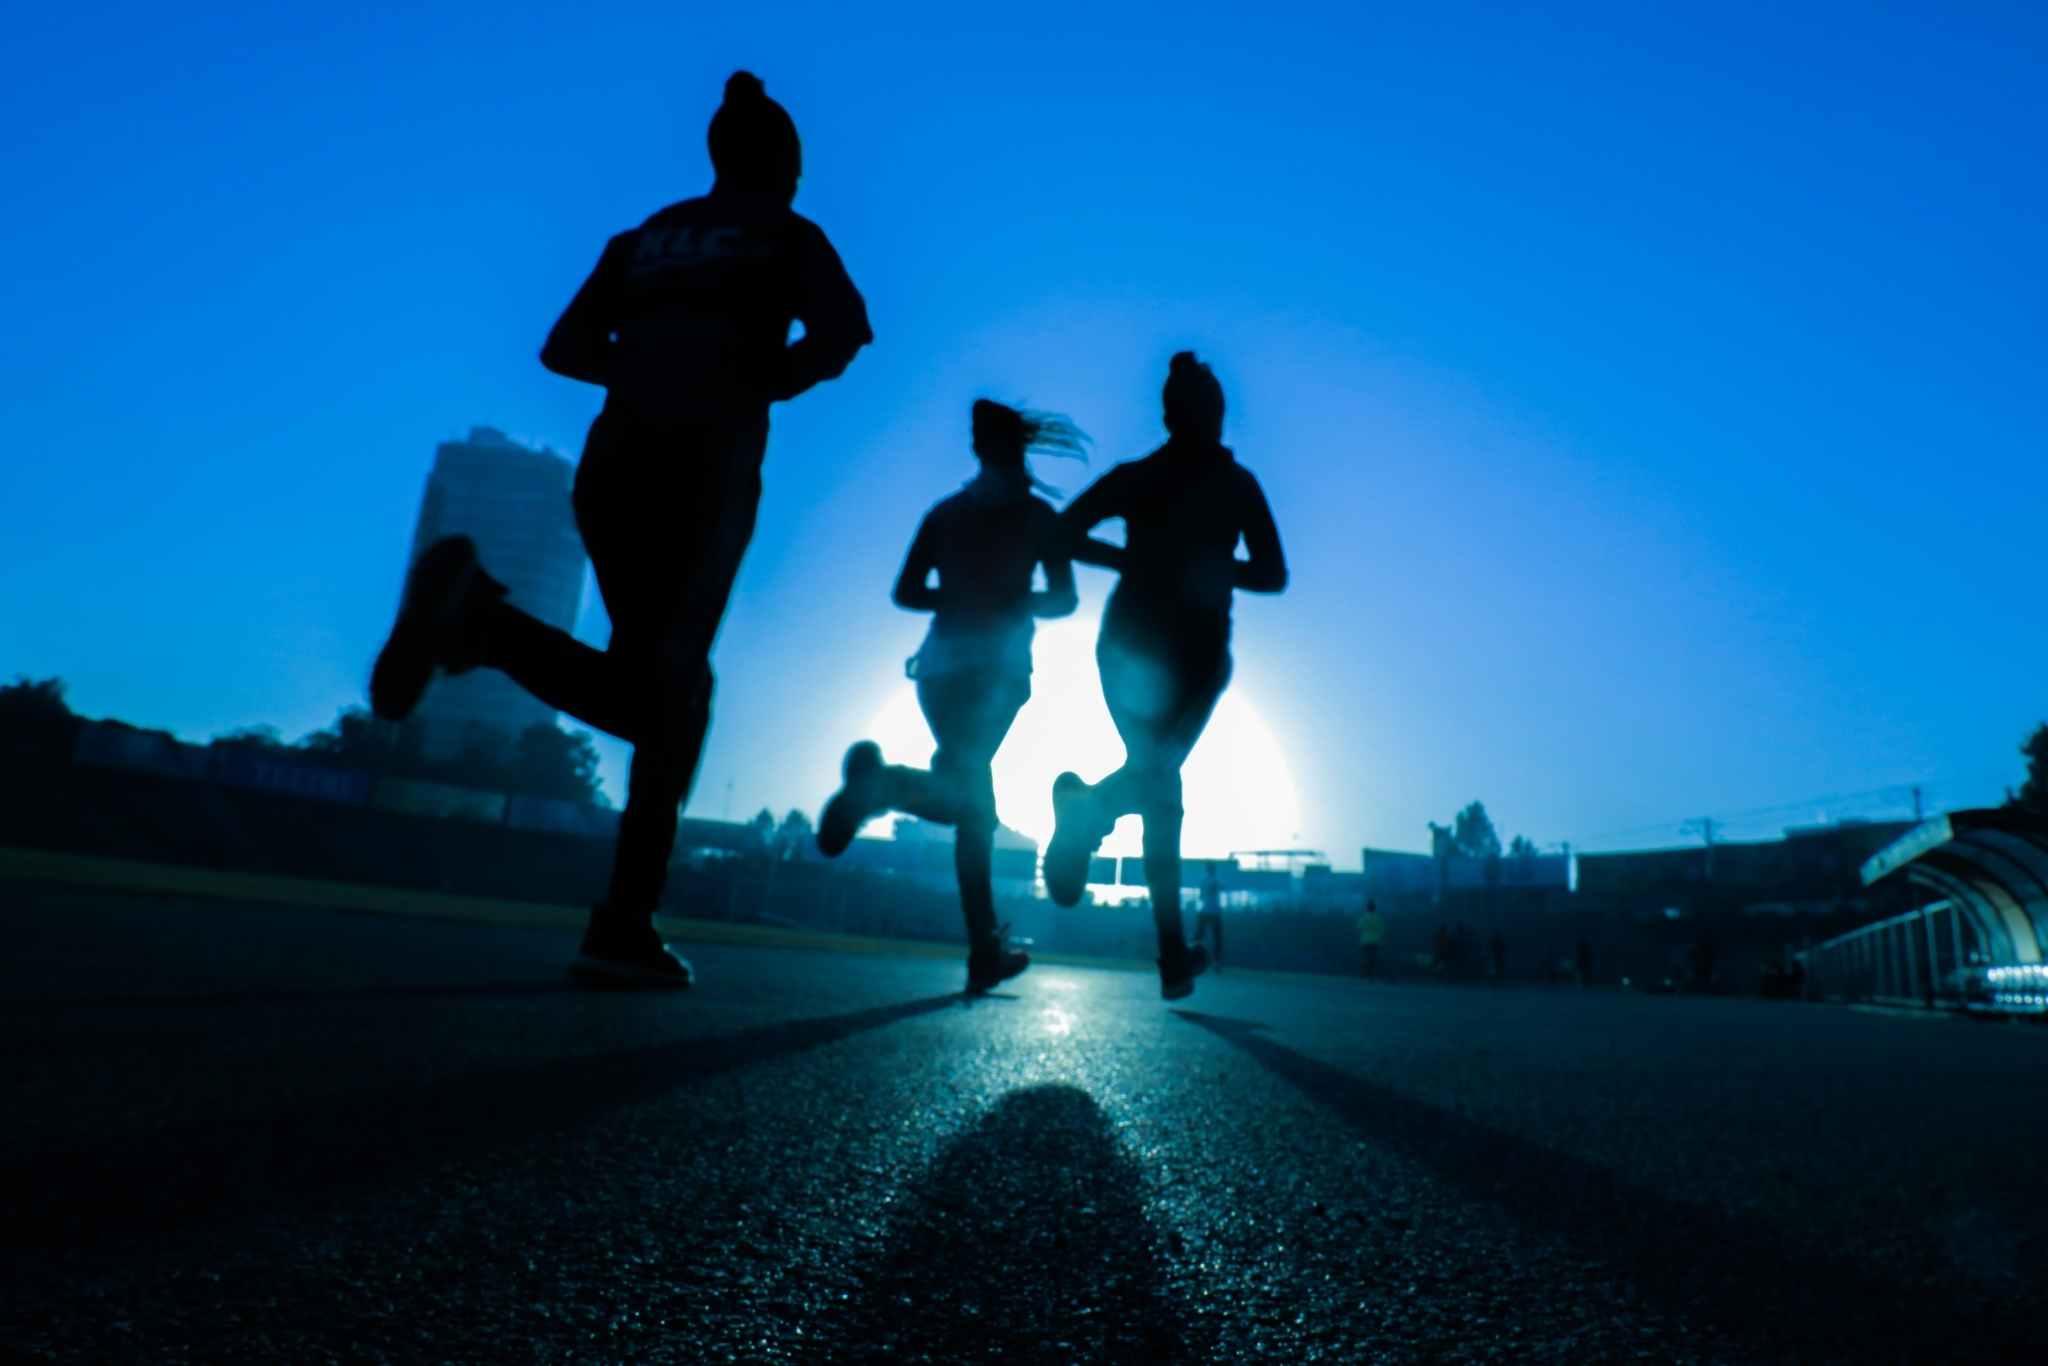 Three people jogging in the dark